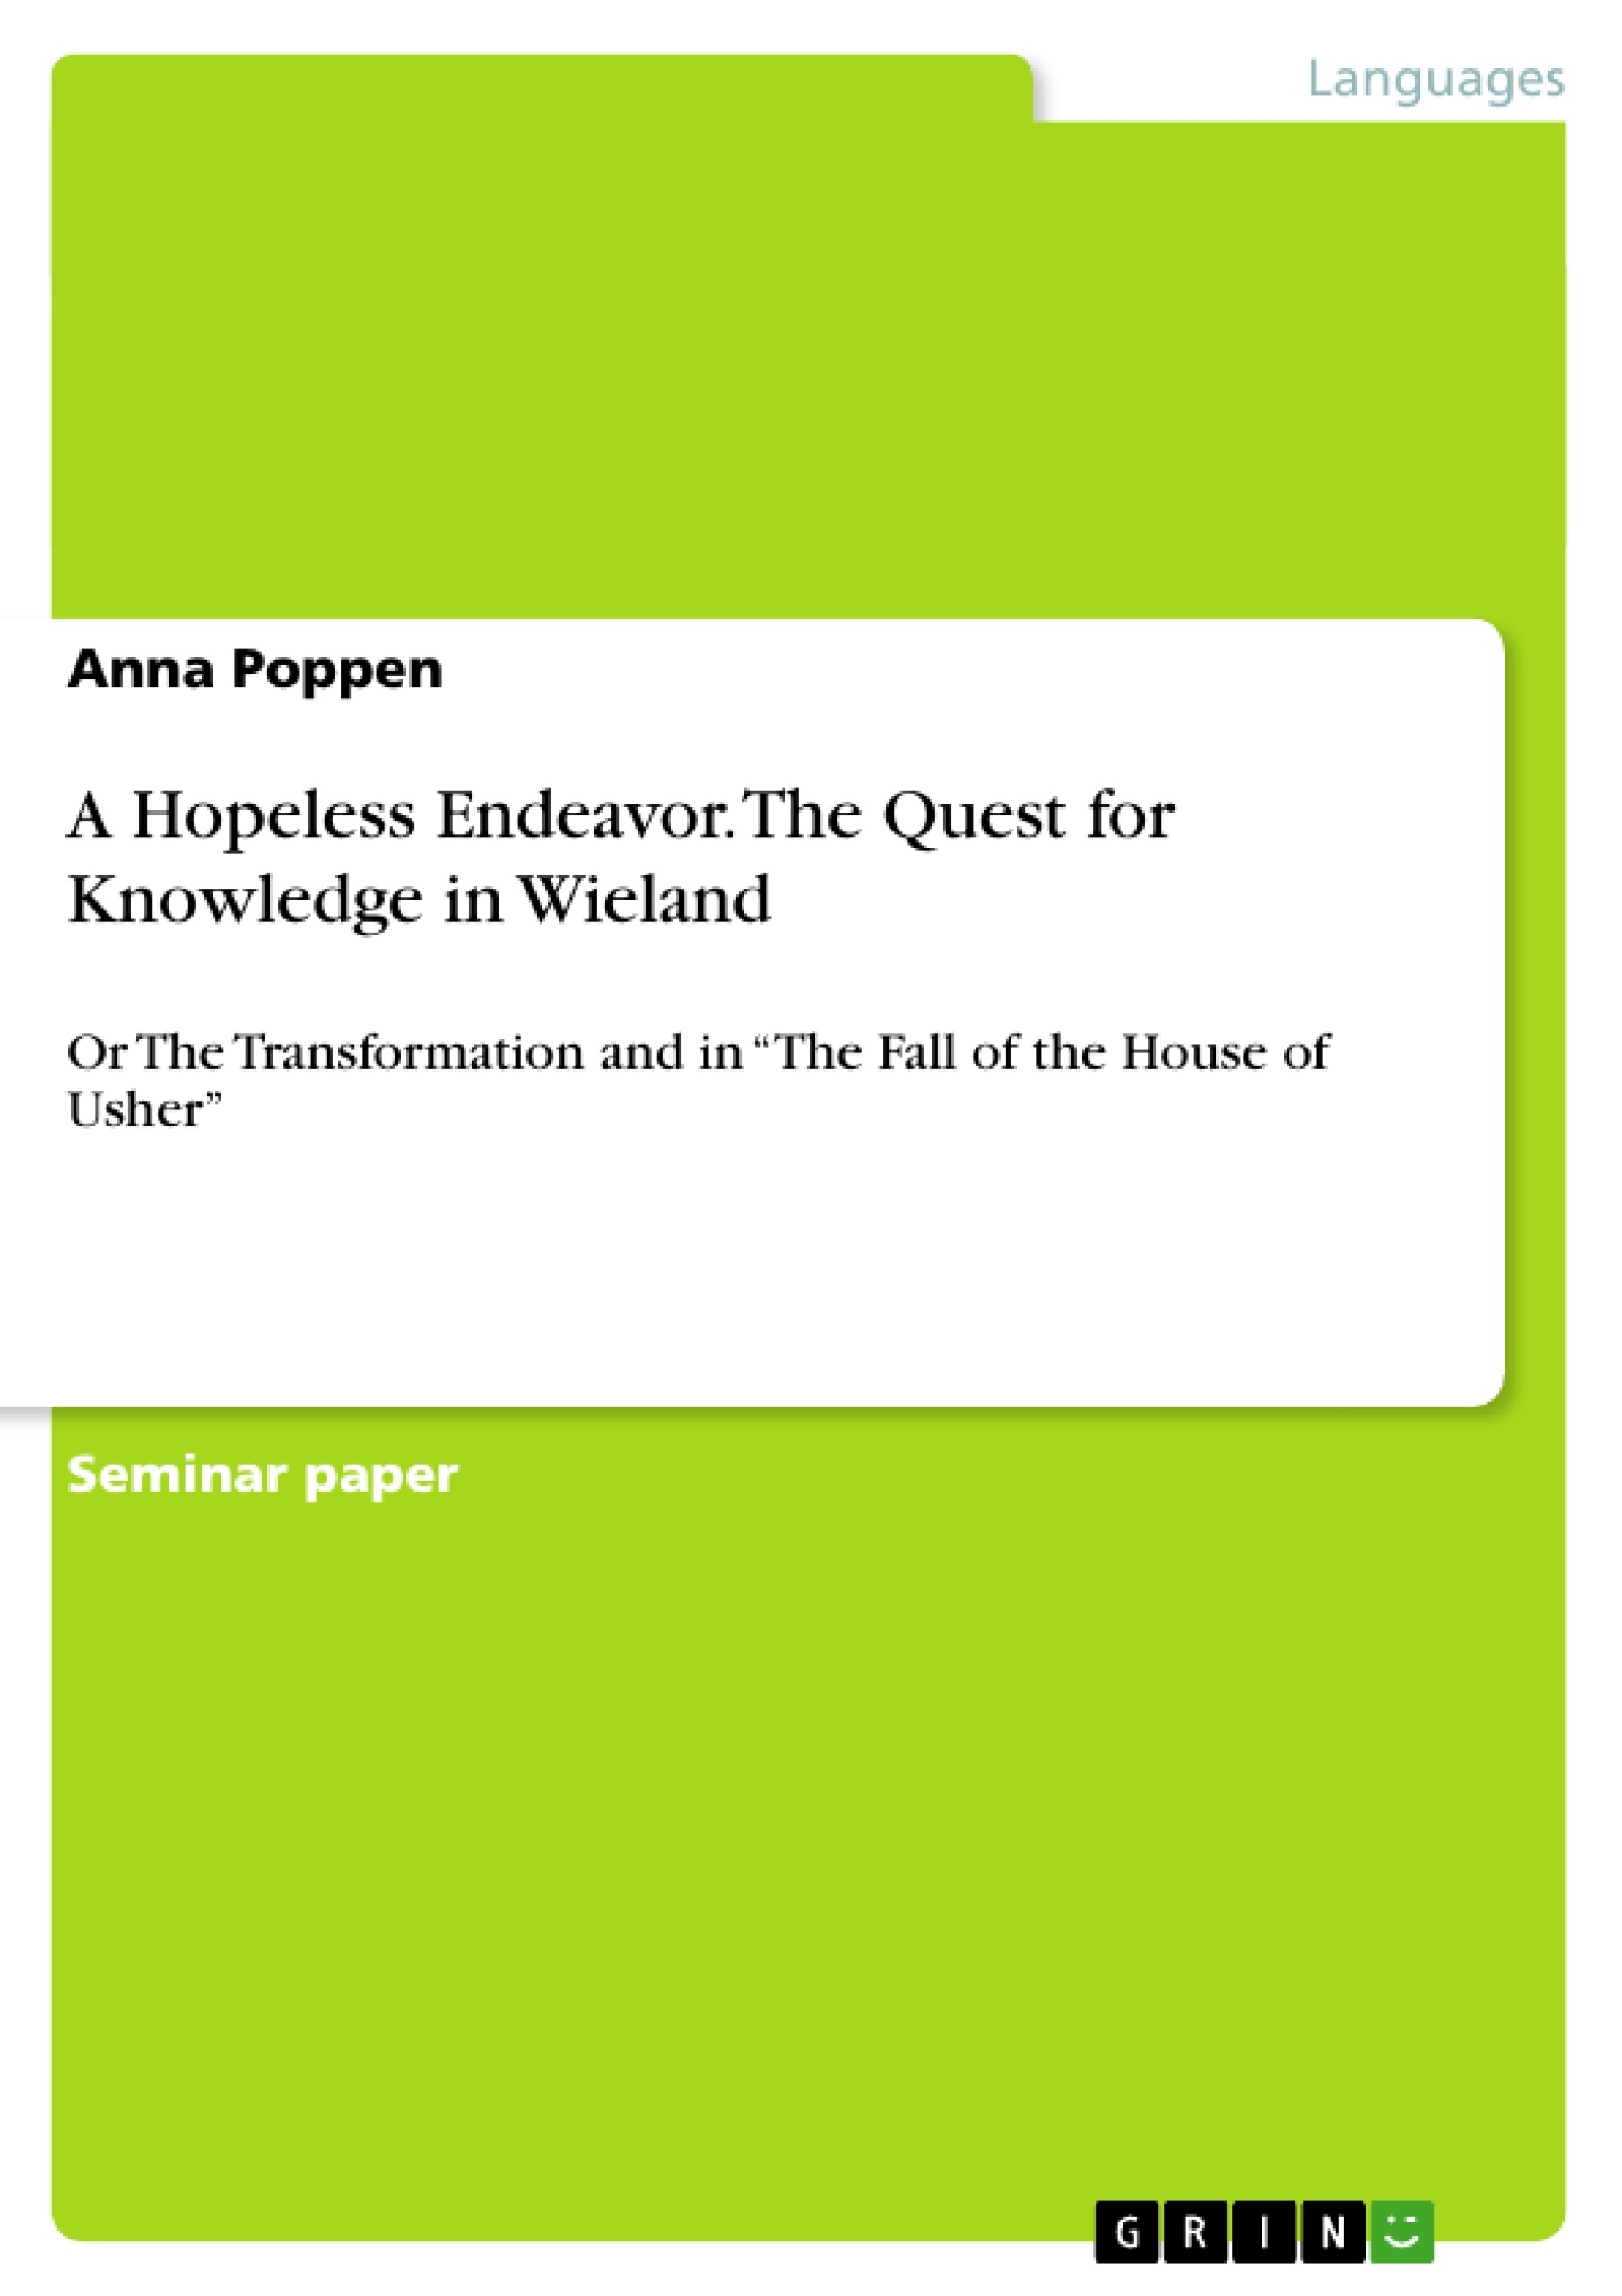 Title: A Hopeless Endeavor. The Quest for Knowledge in Wieland